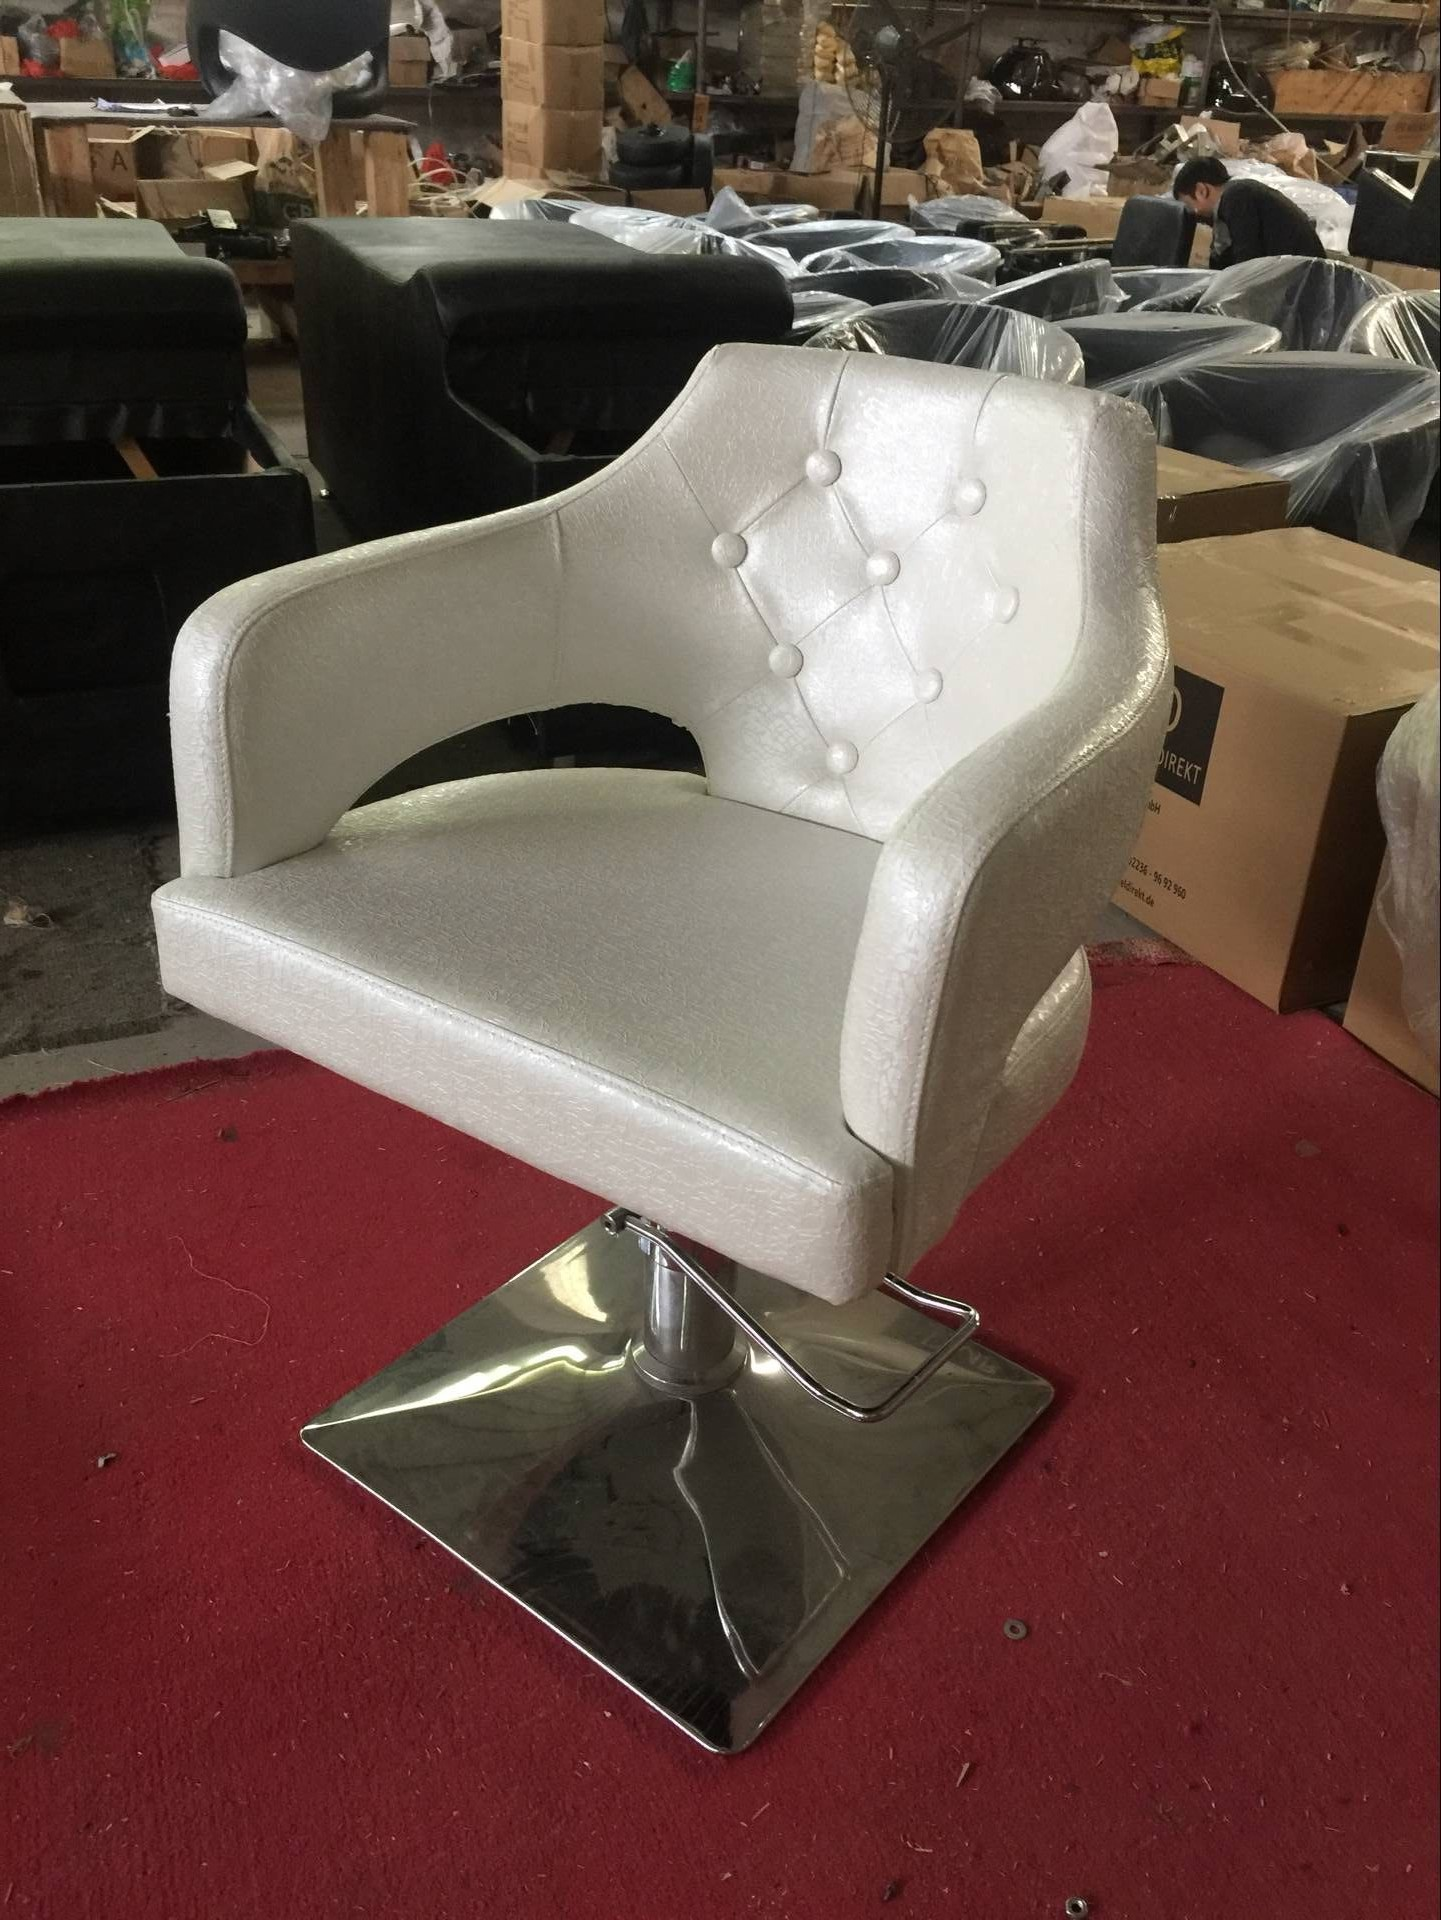 Wondrous Hot Sale High Quality Luxury Styling Chair Salon Furniture Pabps2019 Chair Design Images Pabps2019Com